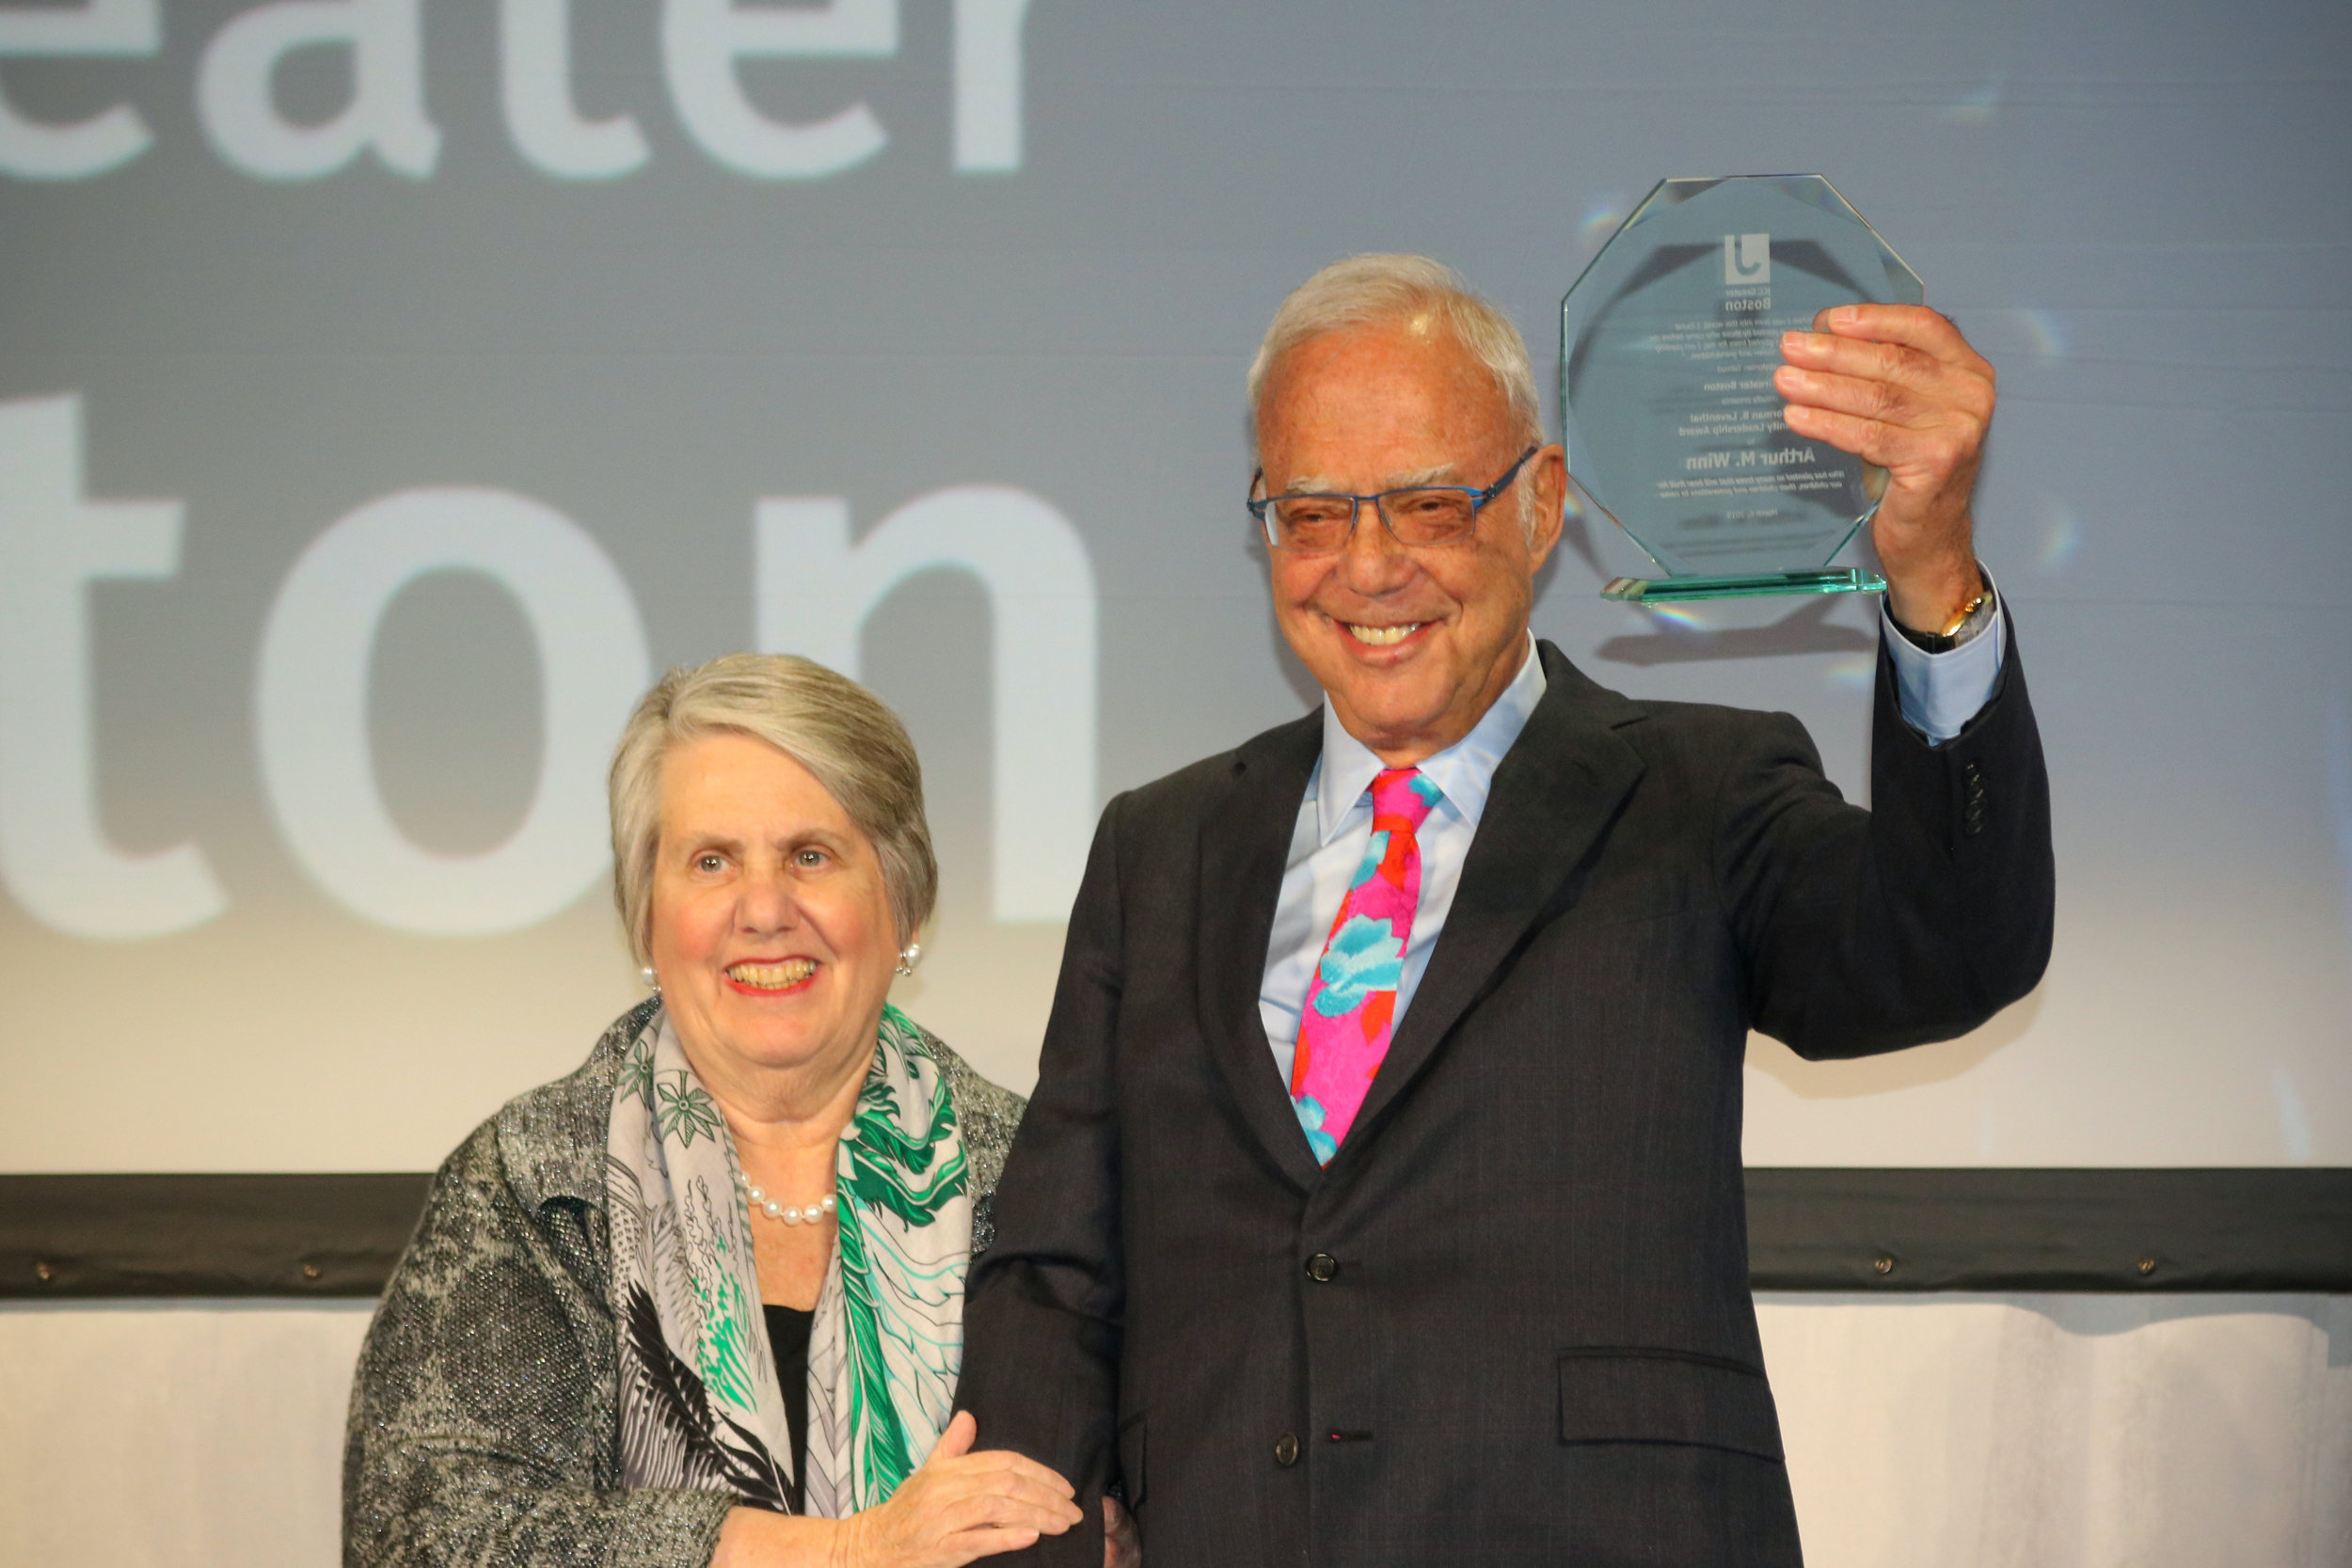 Arthur Winn receives the Norman B. Leventhal Community Leadership Award from Paula Leventhal-Sidman, Daughter of Norman Leventhal